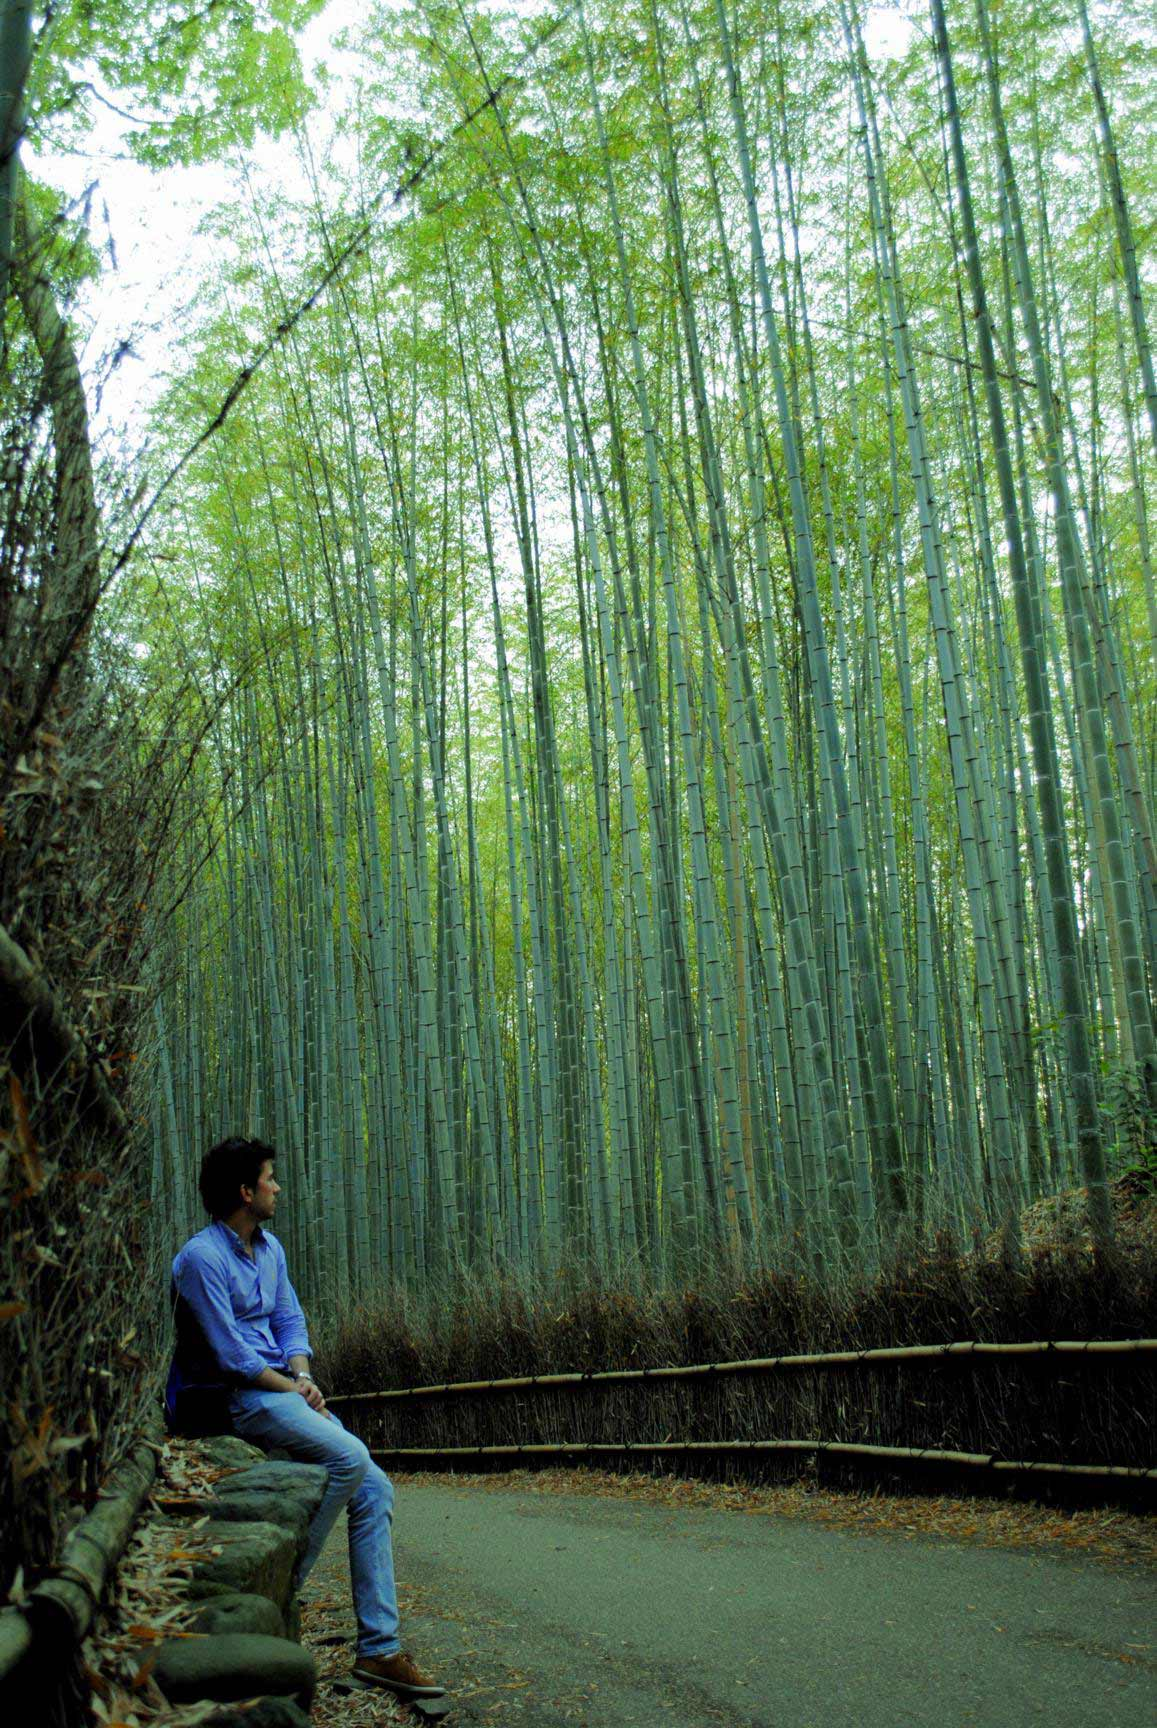 bosque-bambues-arashiyama-8